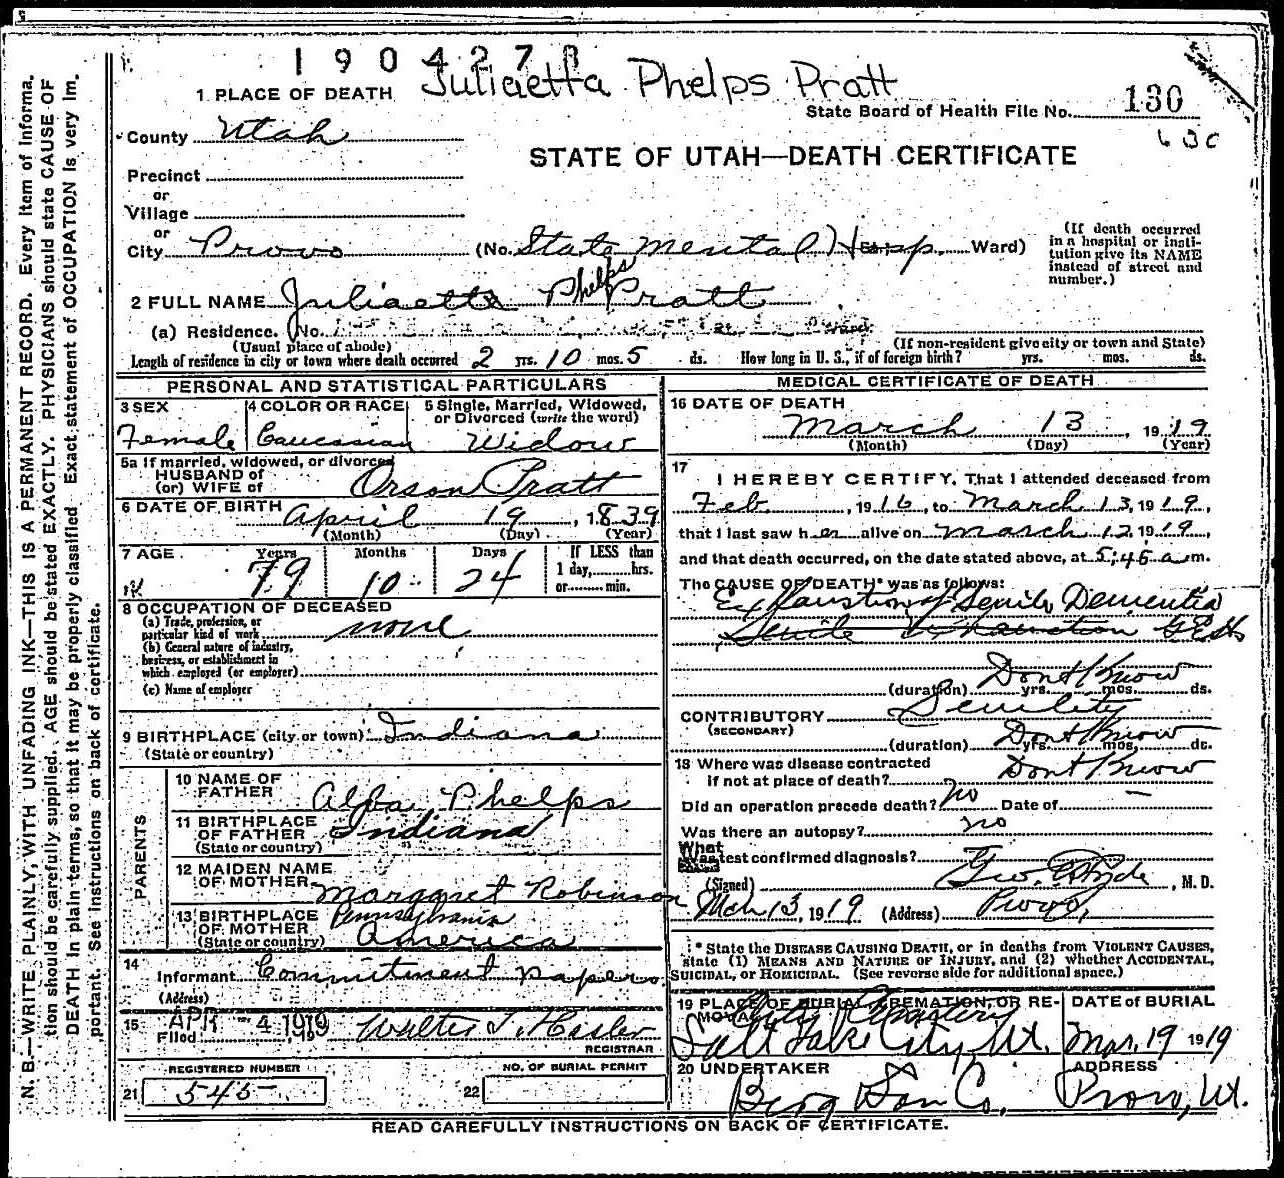 death certificate of juliaetta phelps pratt